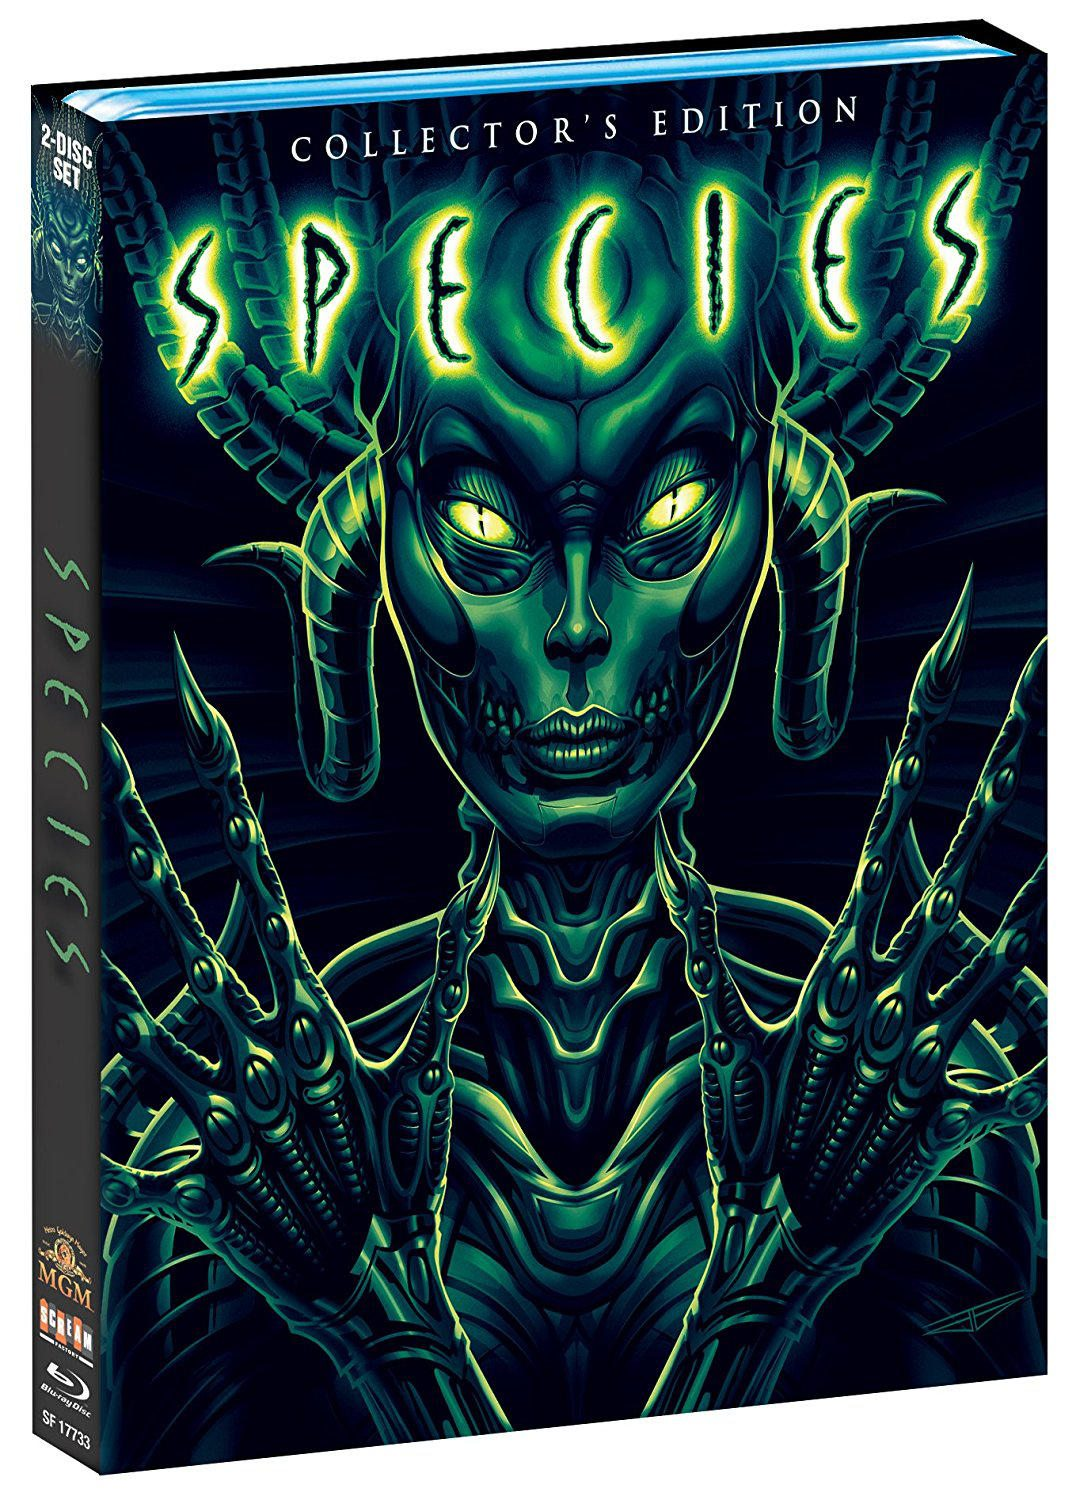 The 'Species' Collector's Editions Full Details Have Been Revealed!